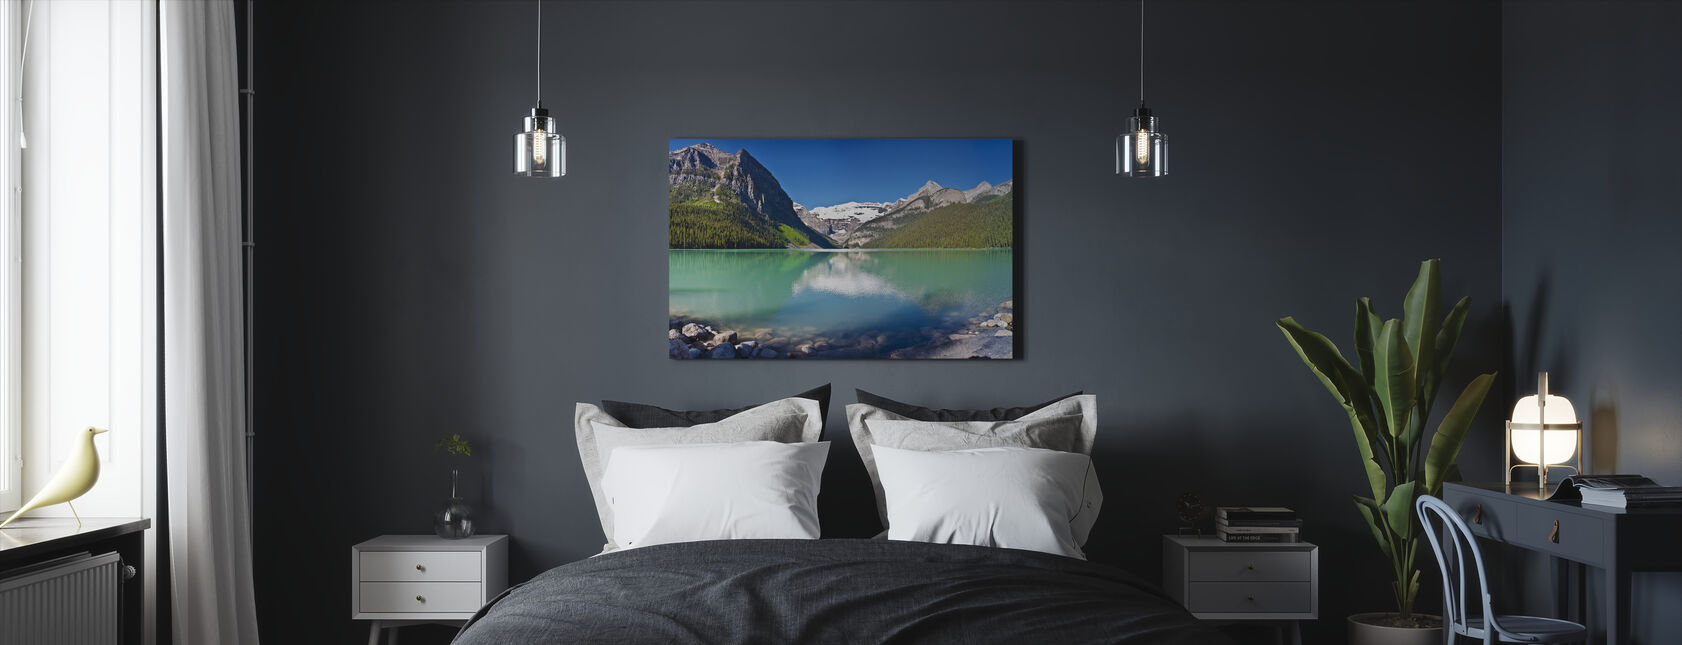 Lake Louise, Alberta, Canada, North America, Panorama - Canvas print - Bedroom